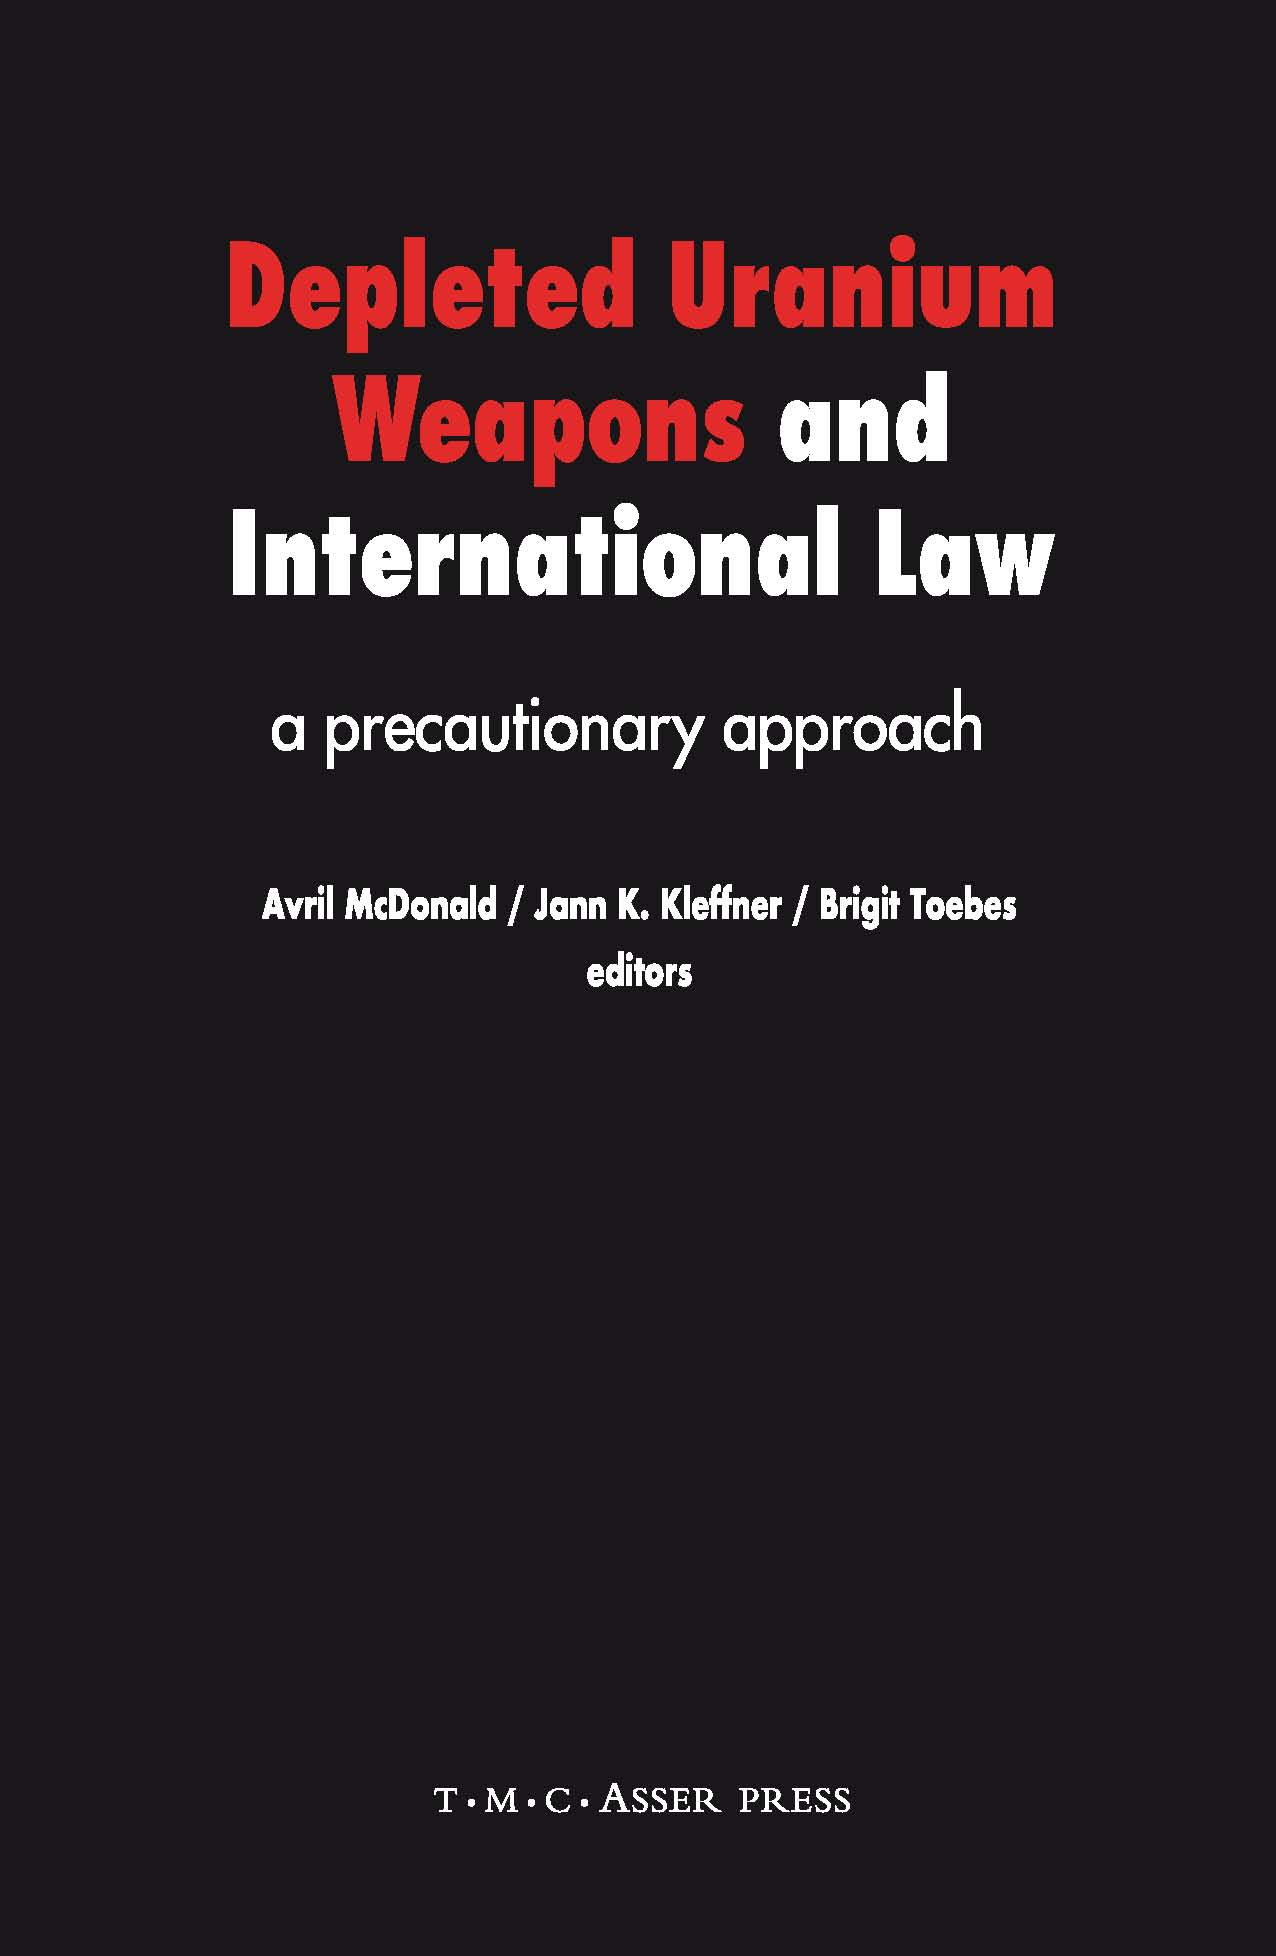 Depleted Uranium Weapons and International Law - A Precautionary Approach